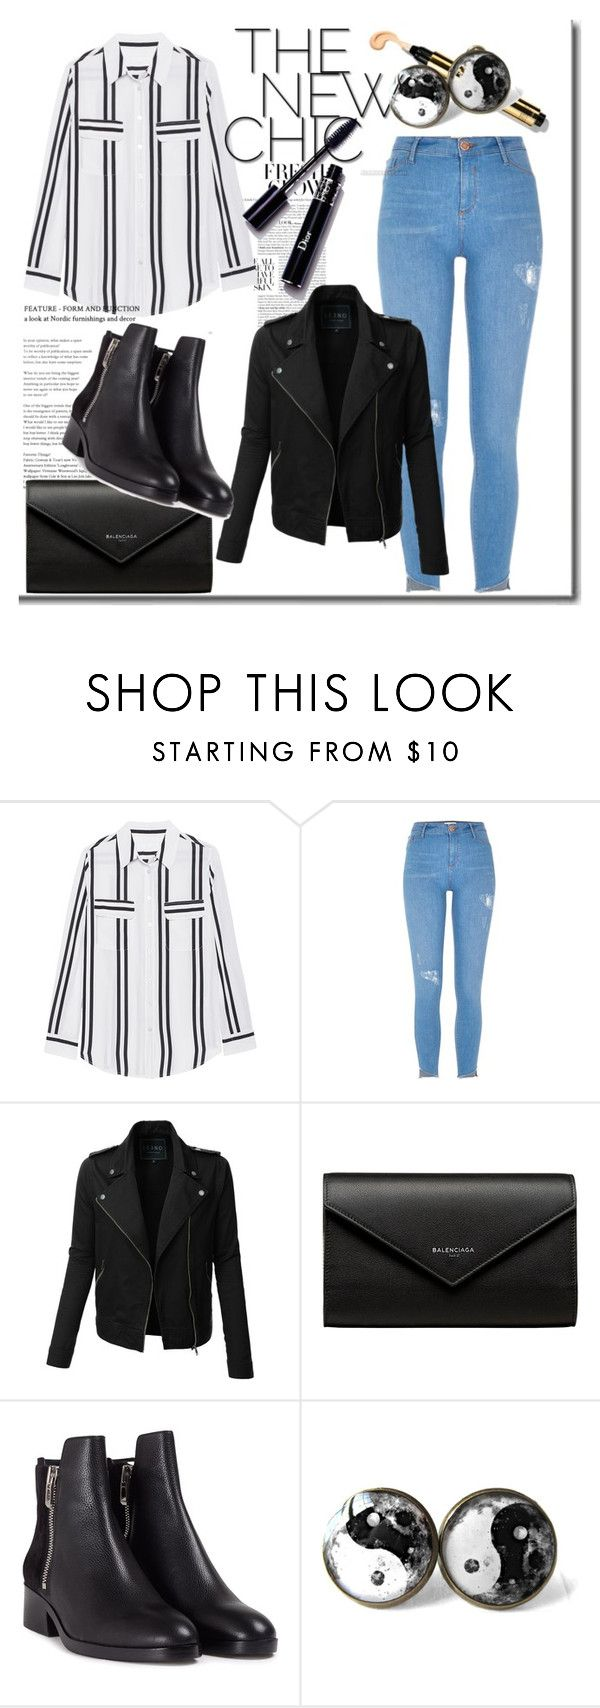 """Untitled #97"" by alexanutella on Polyvore featuring Jadicted, River Island, LE3NO, Balenciaga and 3.1 Phillip Lim"